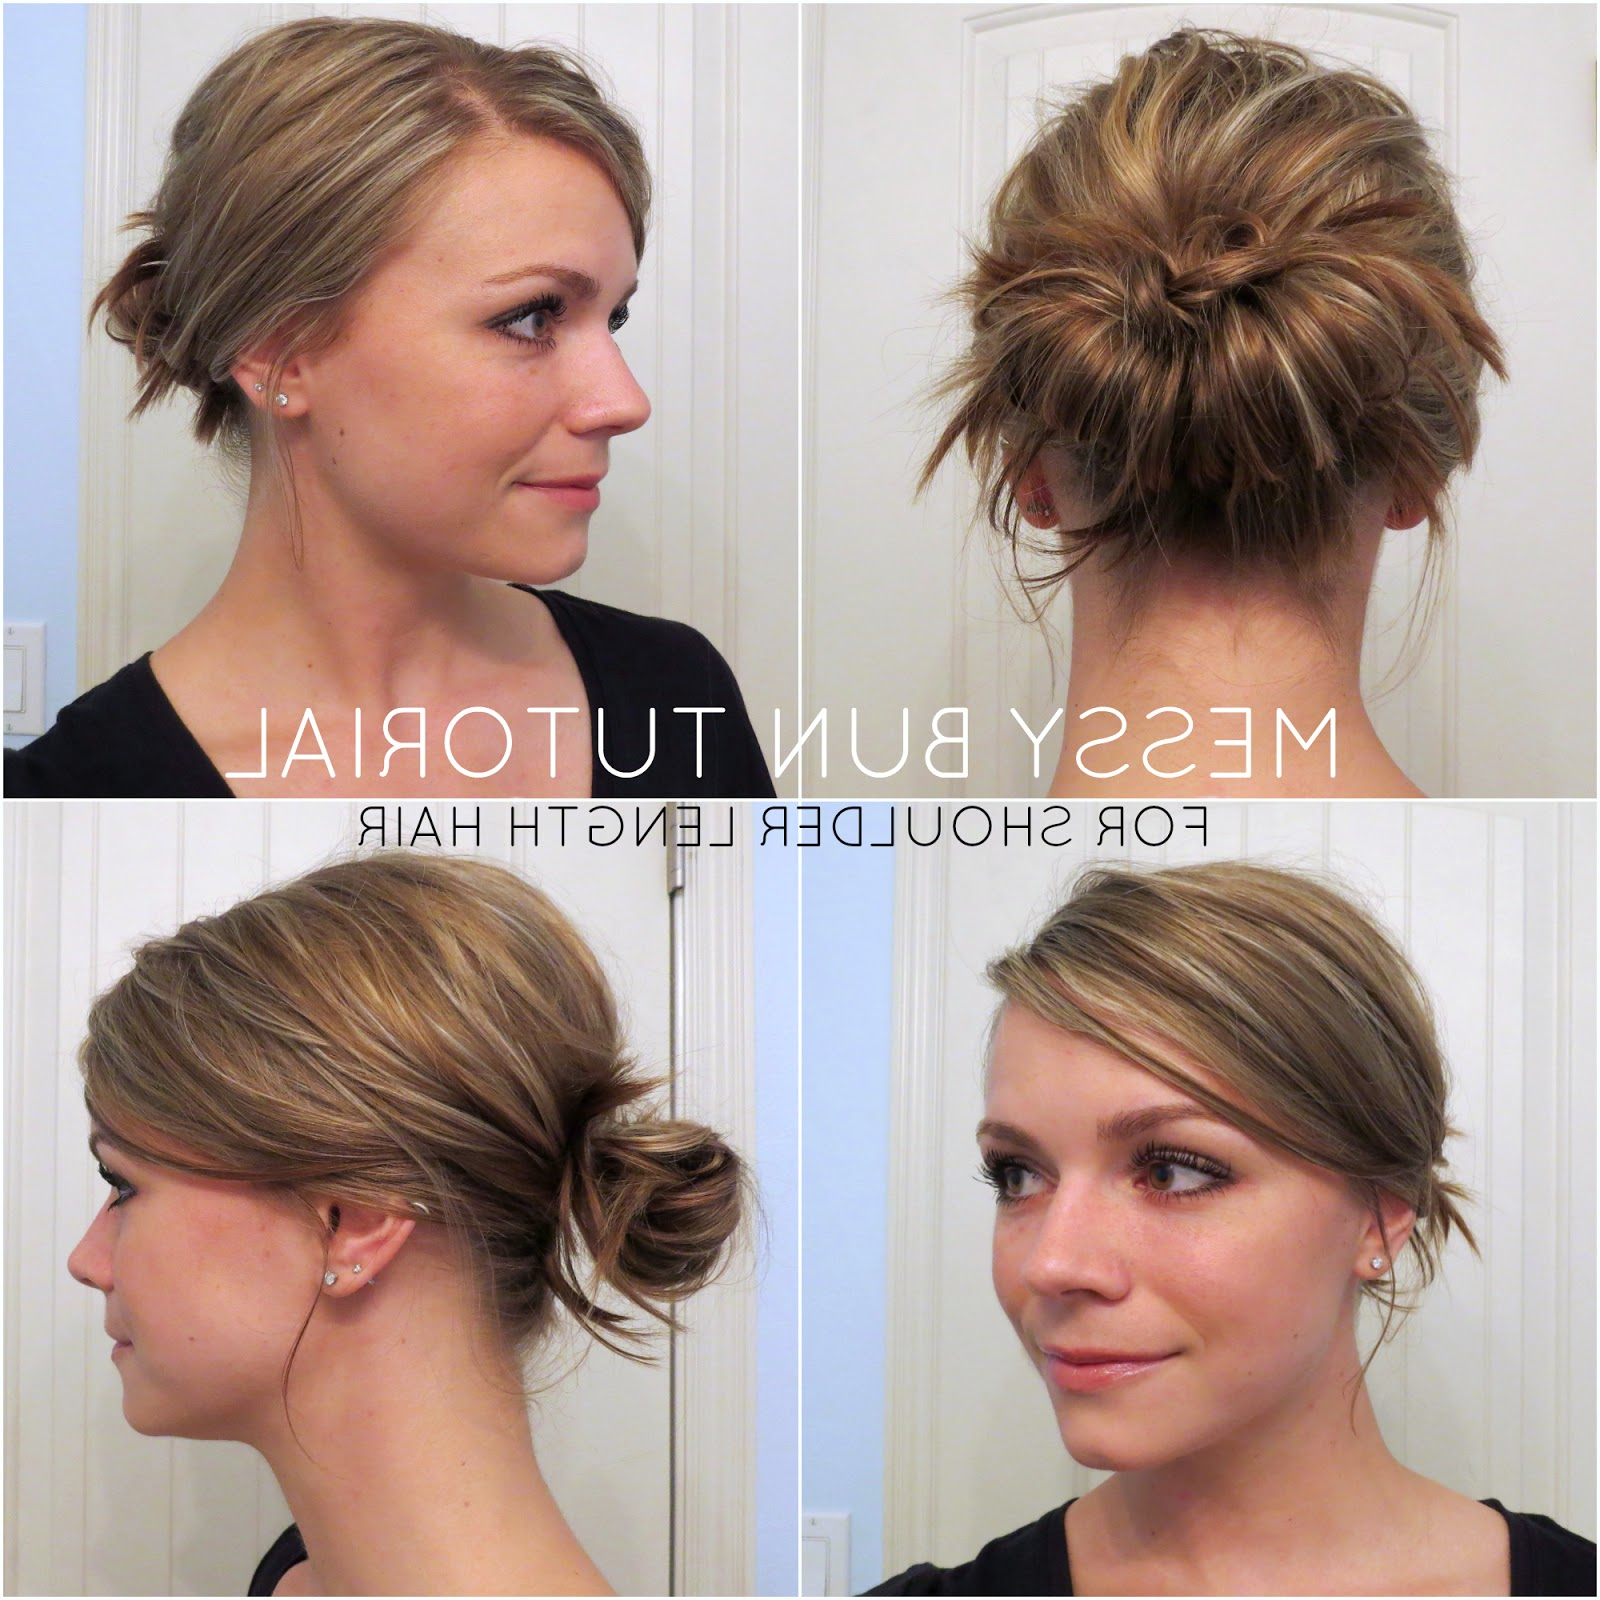 2018 Messy Bun Wedding Hairstyles For Shorter Hair Intended For Bye Bye Beehive │ A Hairstyle Blog: Messy Bun For Shoulder Length Hair (View 4 of 20)